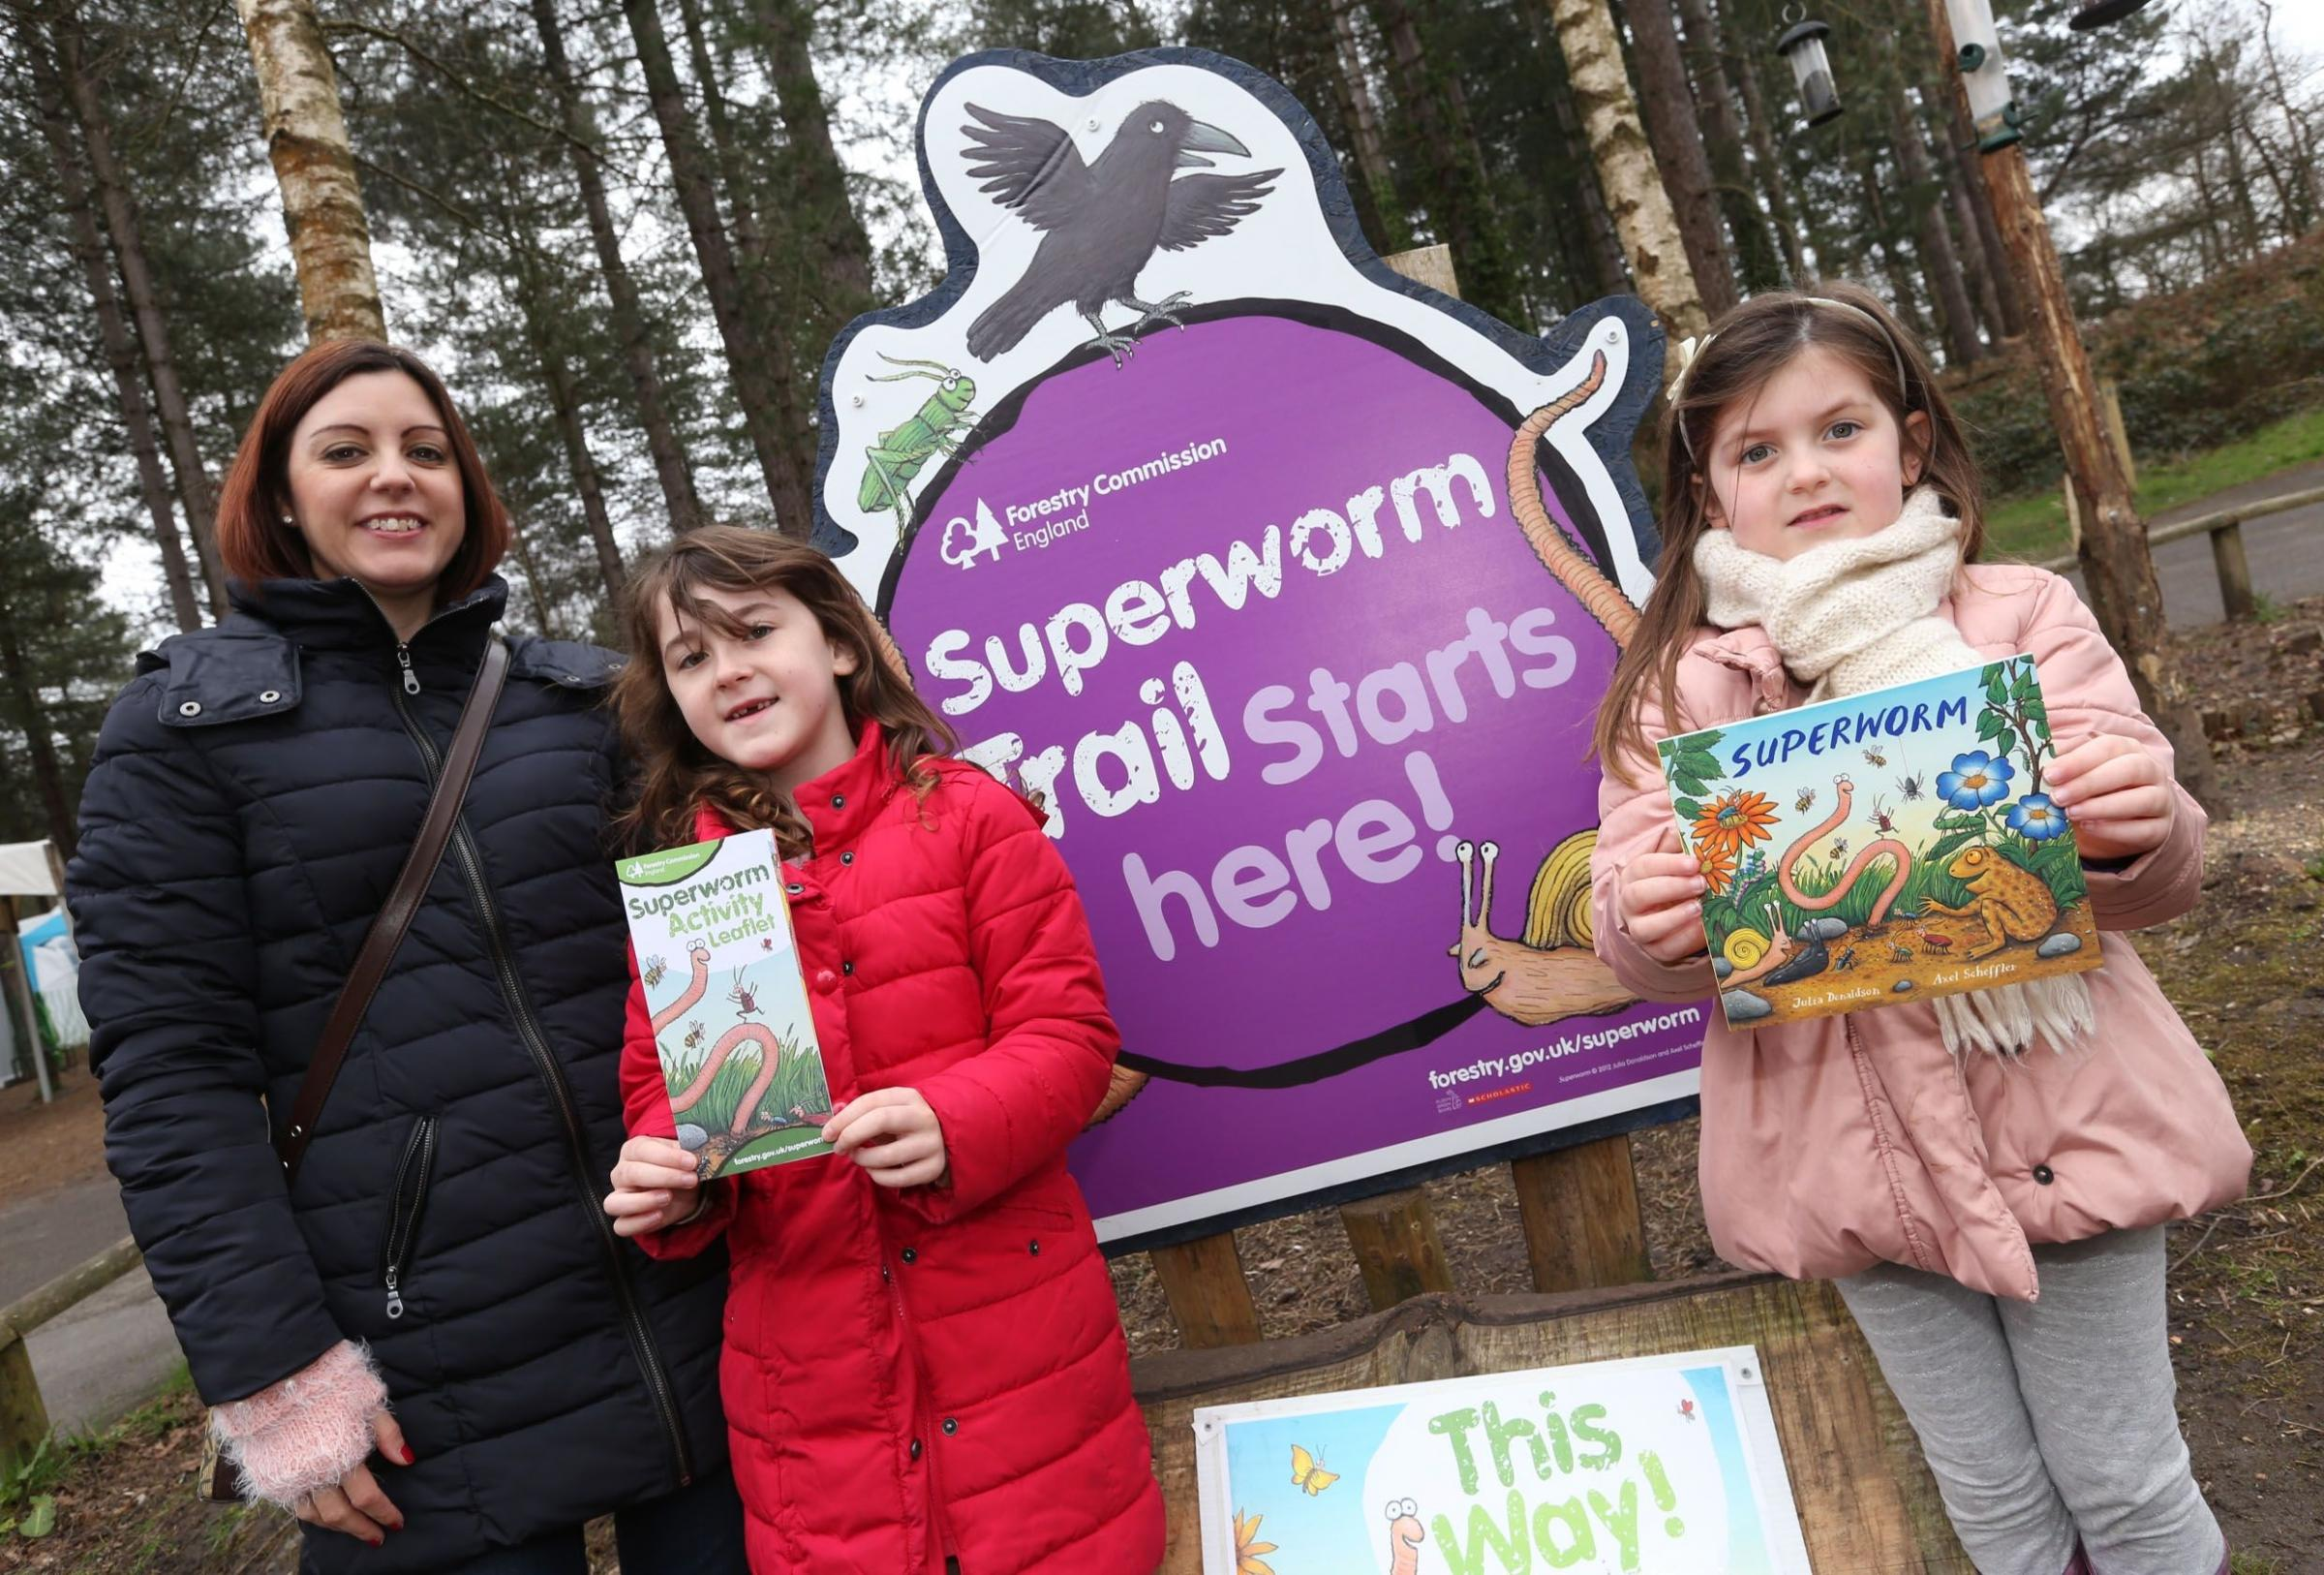 New Superworm trail comes to Moors Valley Country Park